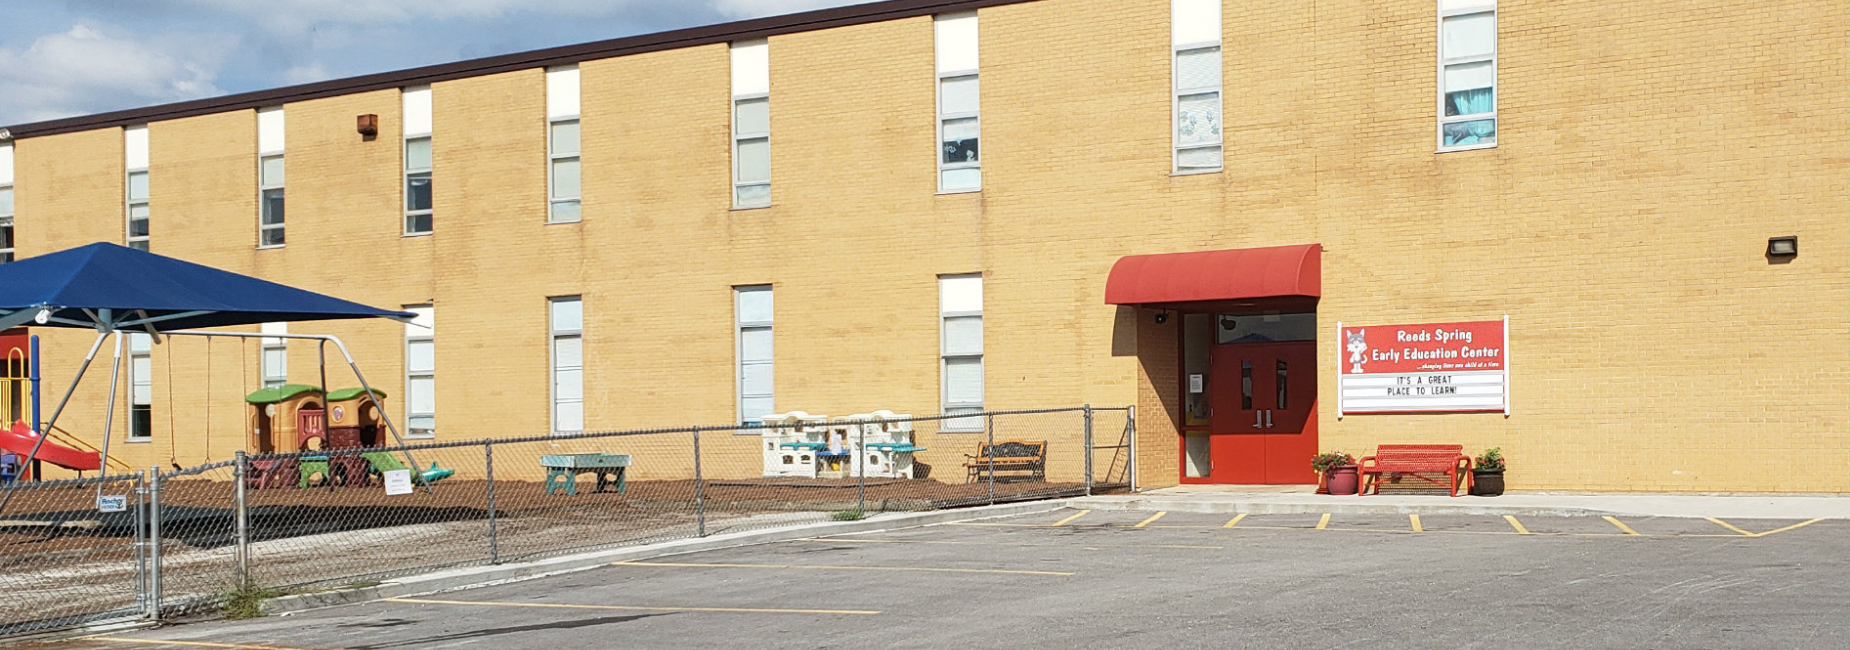 exterior of early education center